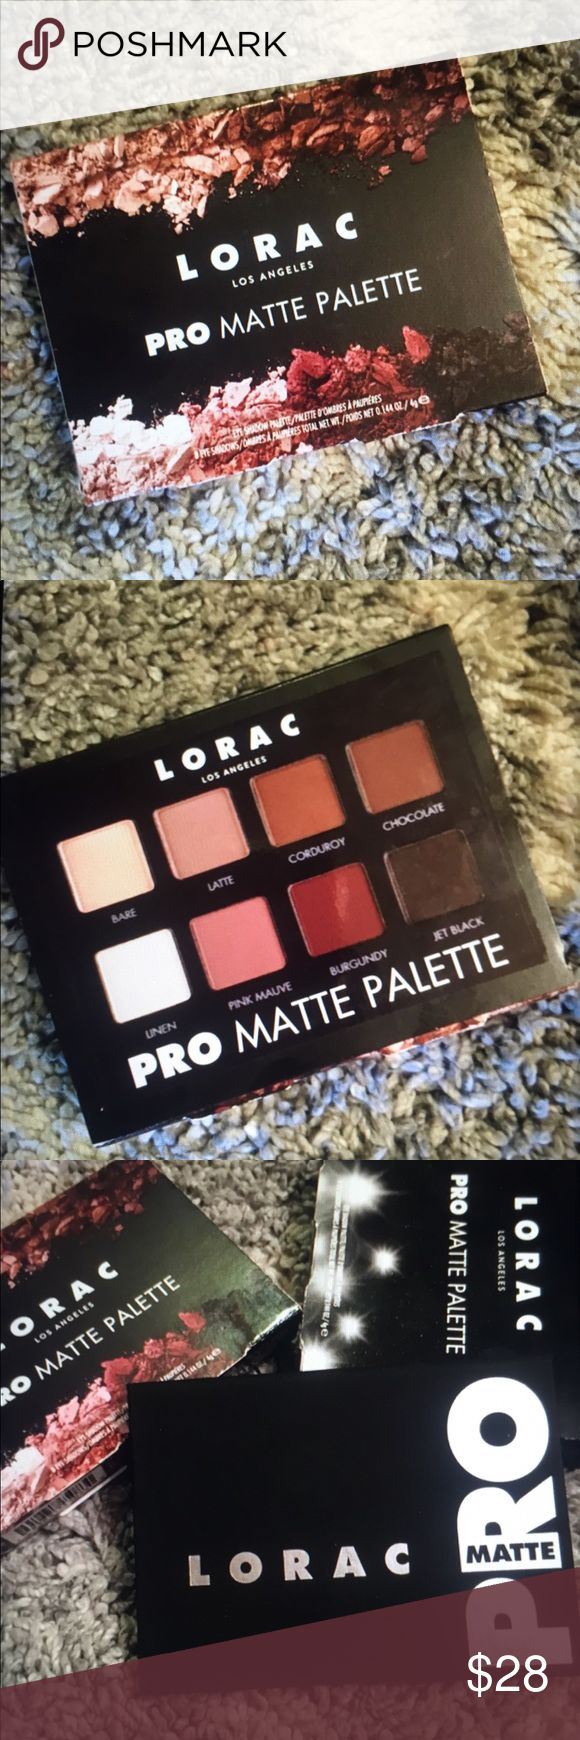 Lorca eyeshadow palette💕 New in box, took out for pics... Lorac Pro matte palette! ❤ beautiful color and contour, stays on all day. A great product! lorac Makeup Eyeshadow